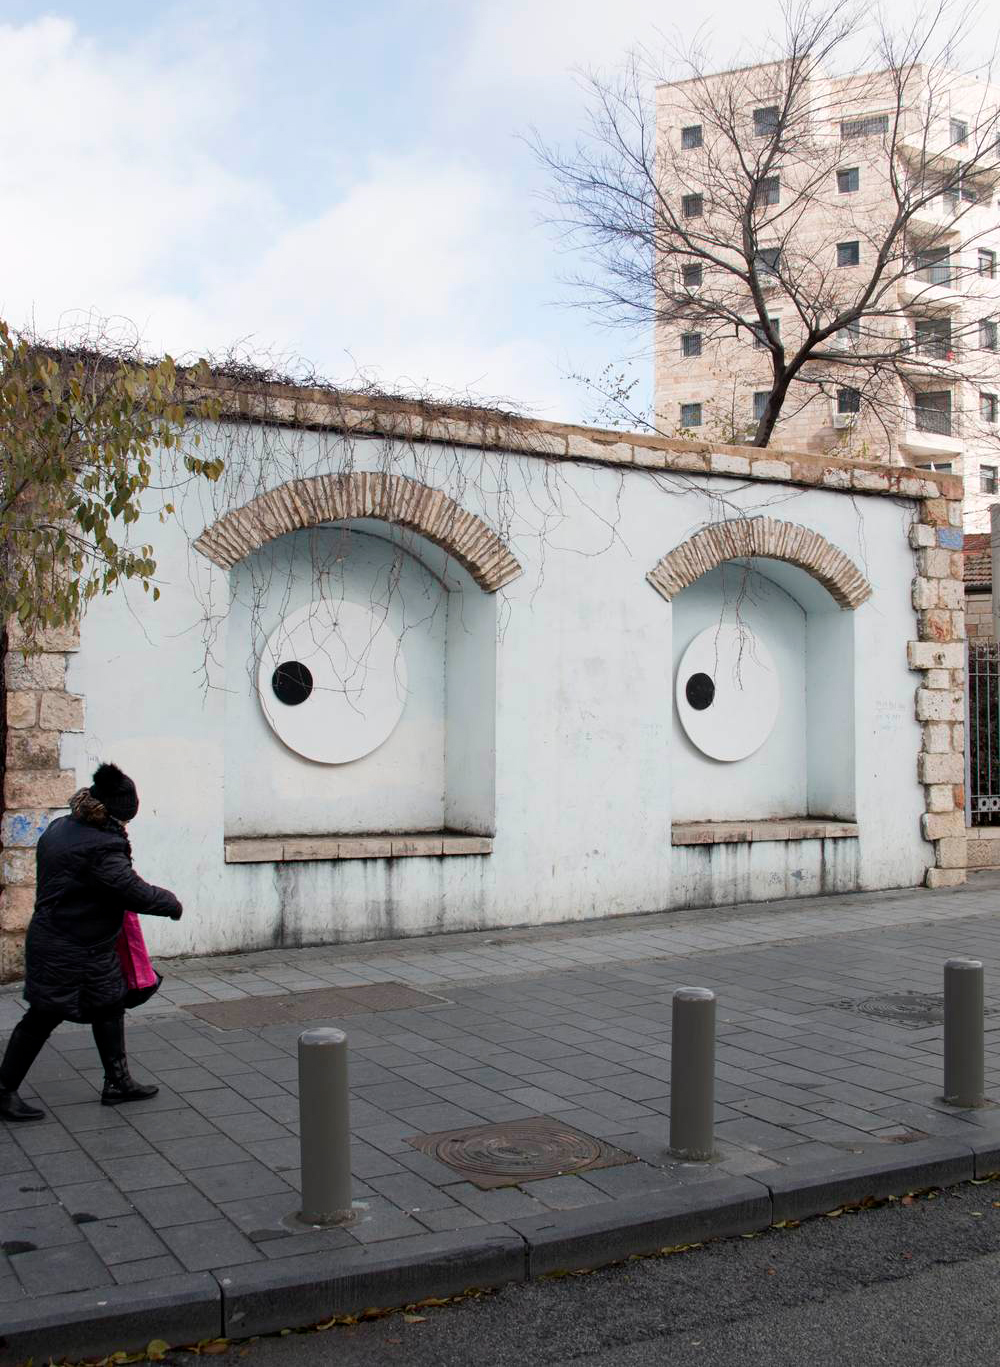 Quirky Interventions by Octavi Serra Question the Rules of Public Spaces